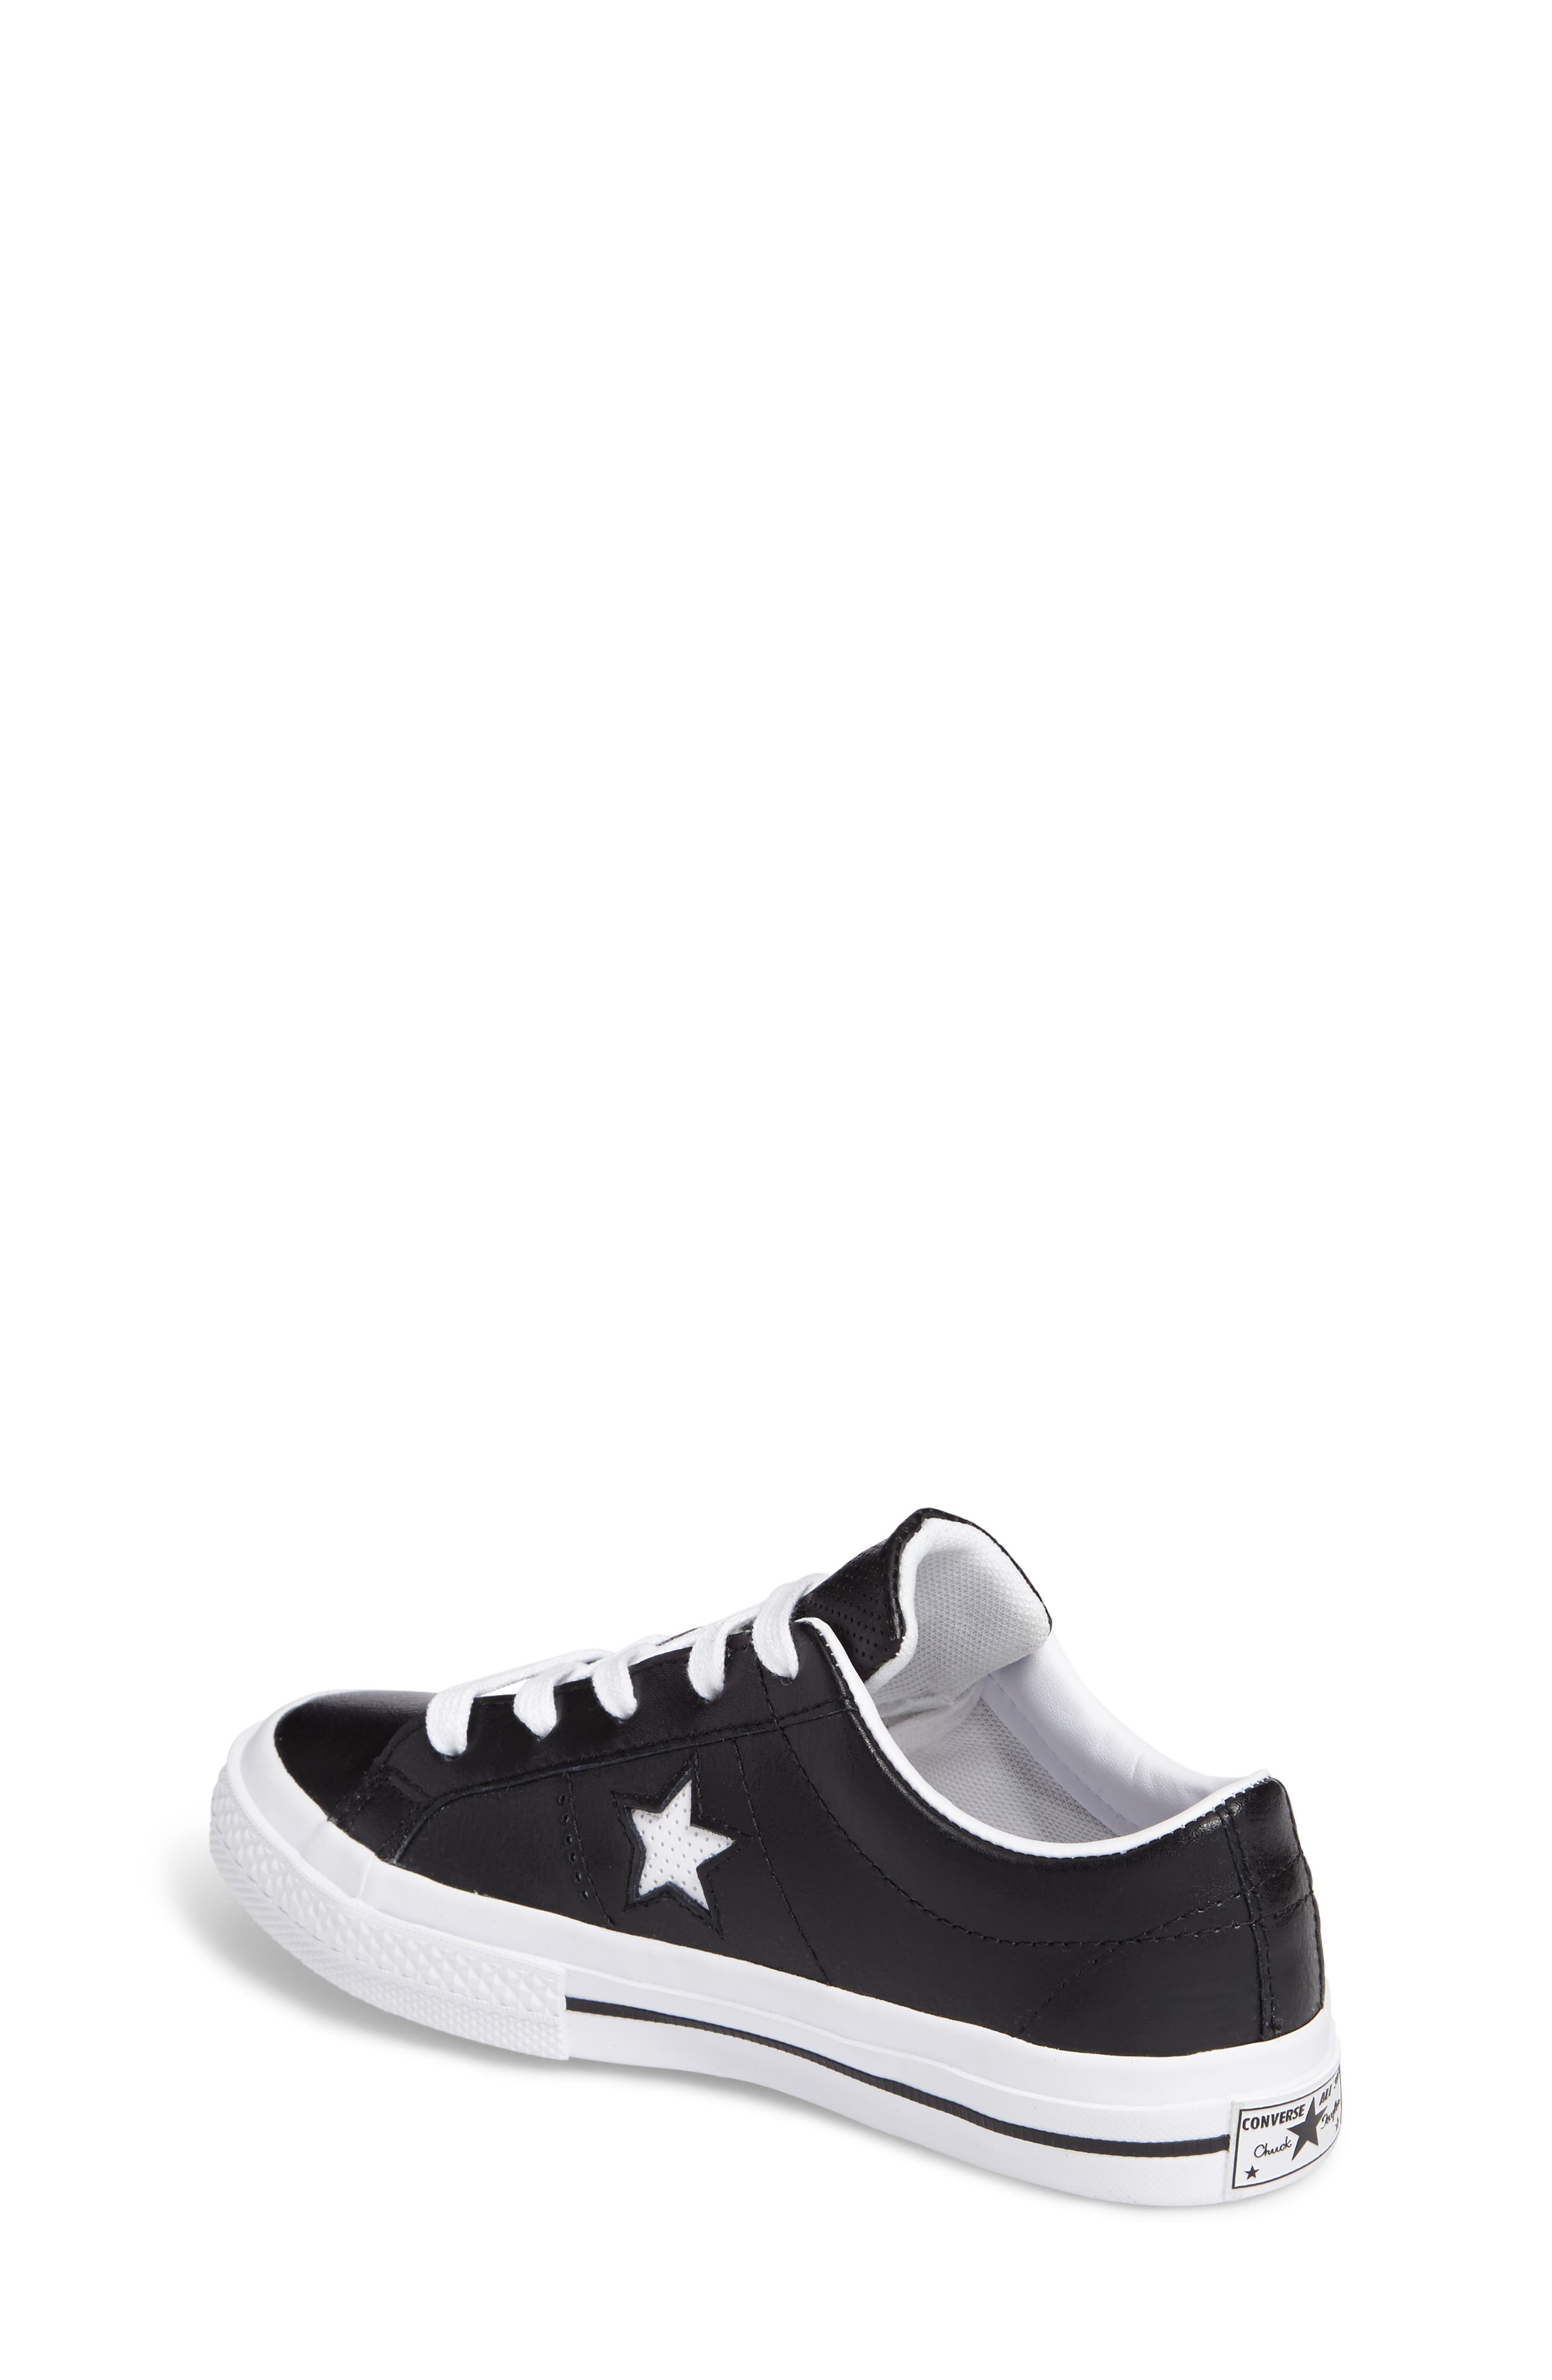 Chuck Taylor<sup>®</sup> All Star<sup>®</sup> One Star Sneaker,                             Alternate thumbnail 2, color,                             001